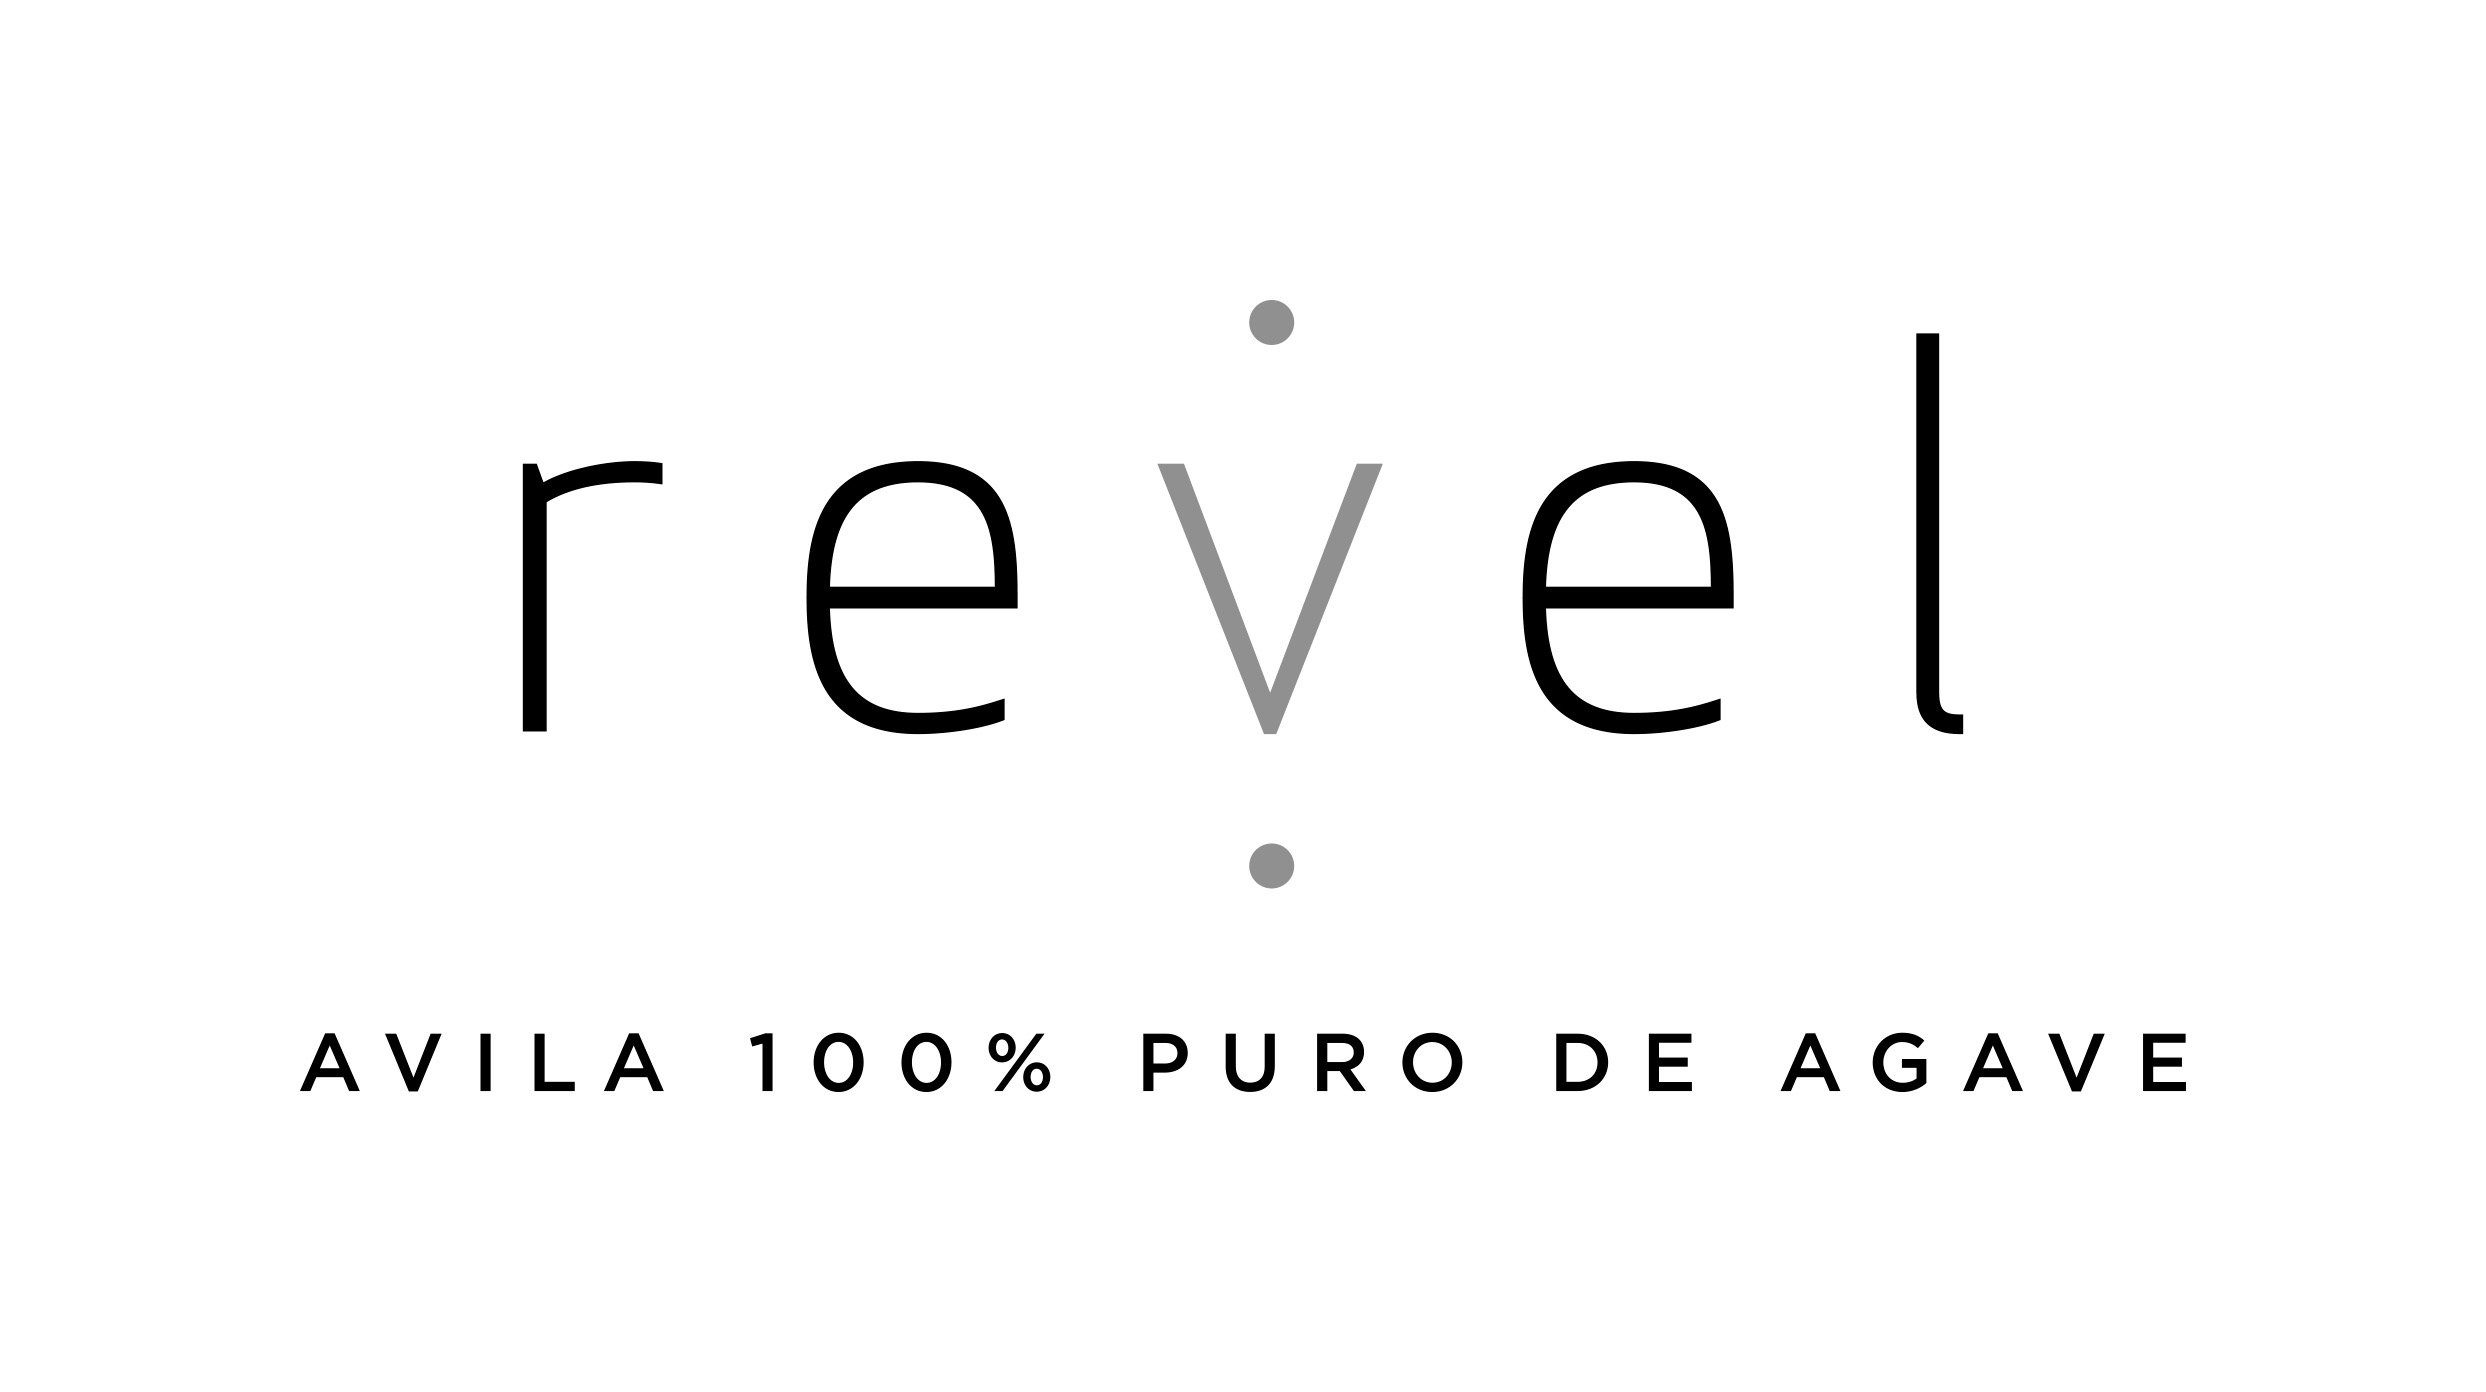 - ABOUT THE BRANDREVEL is a new brand and category. Handcrafted from all-natural ingredients, REVEL is made from 100% blue weber agave, the same plant base as tequila, but produced in Morelos, Mexico, a state known for its pristine, alkaline-rich soil. As the world's first Avila® brand, REVEL is introducing the complexities of agave to a larger, more discerning customer base. With three varieties—Blanco, Reposado, and Añejo—REVEL marries the best of old and new to produce a truly one-of-a-kind flavor. REVEL is sold at upscale bars, restaurants and liquor stores in California and Minnesota, as well as online. For more information, visit www.revelspirits.com.